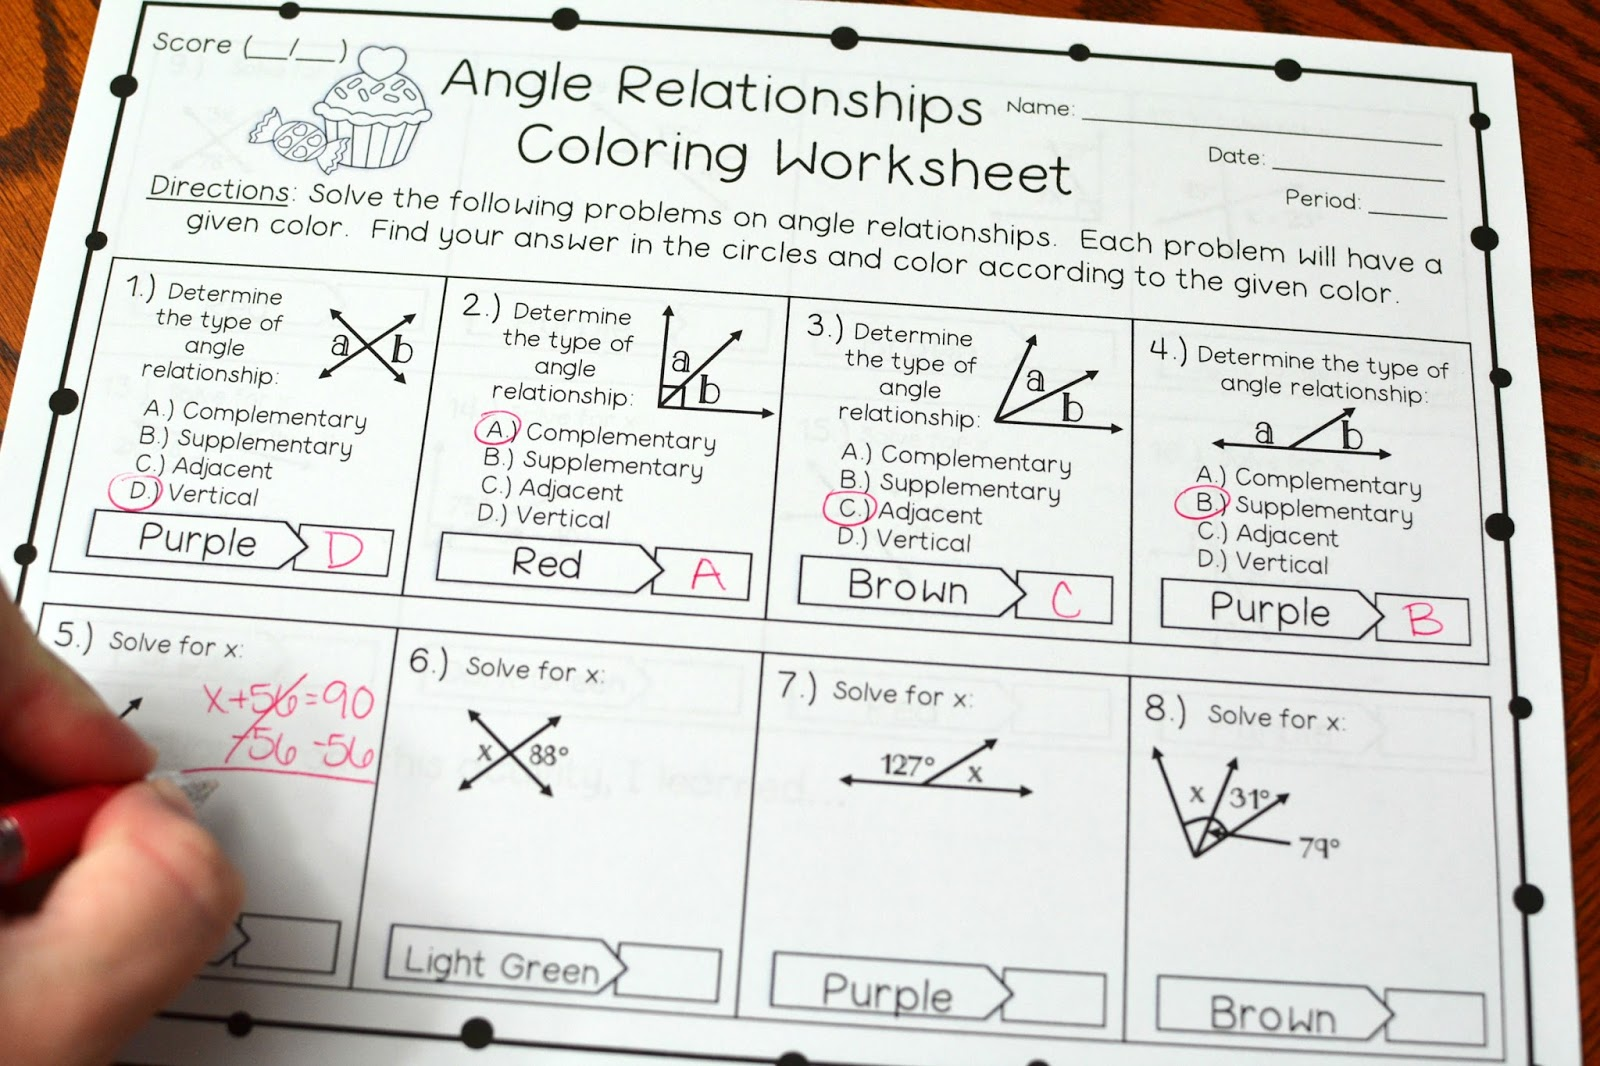 Angle Relationships Coloring Worksheet [ 1066 x 1600 Pixel ]